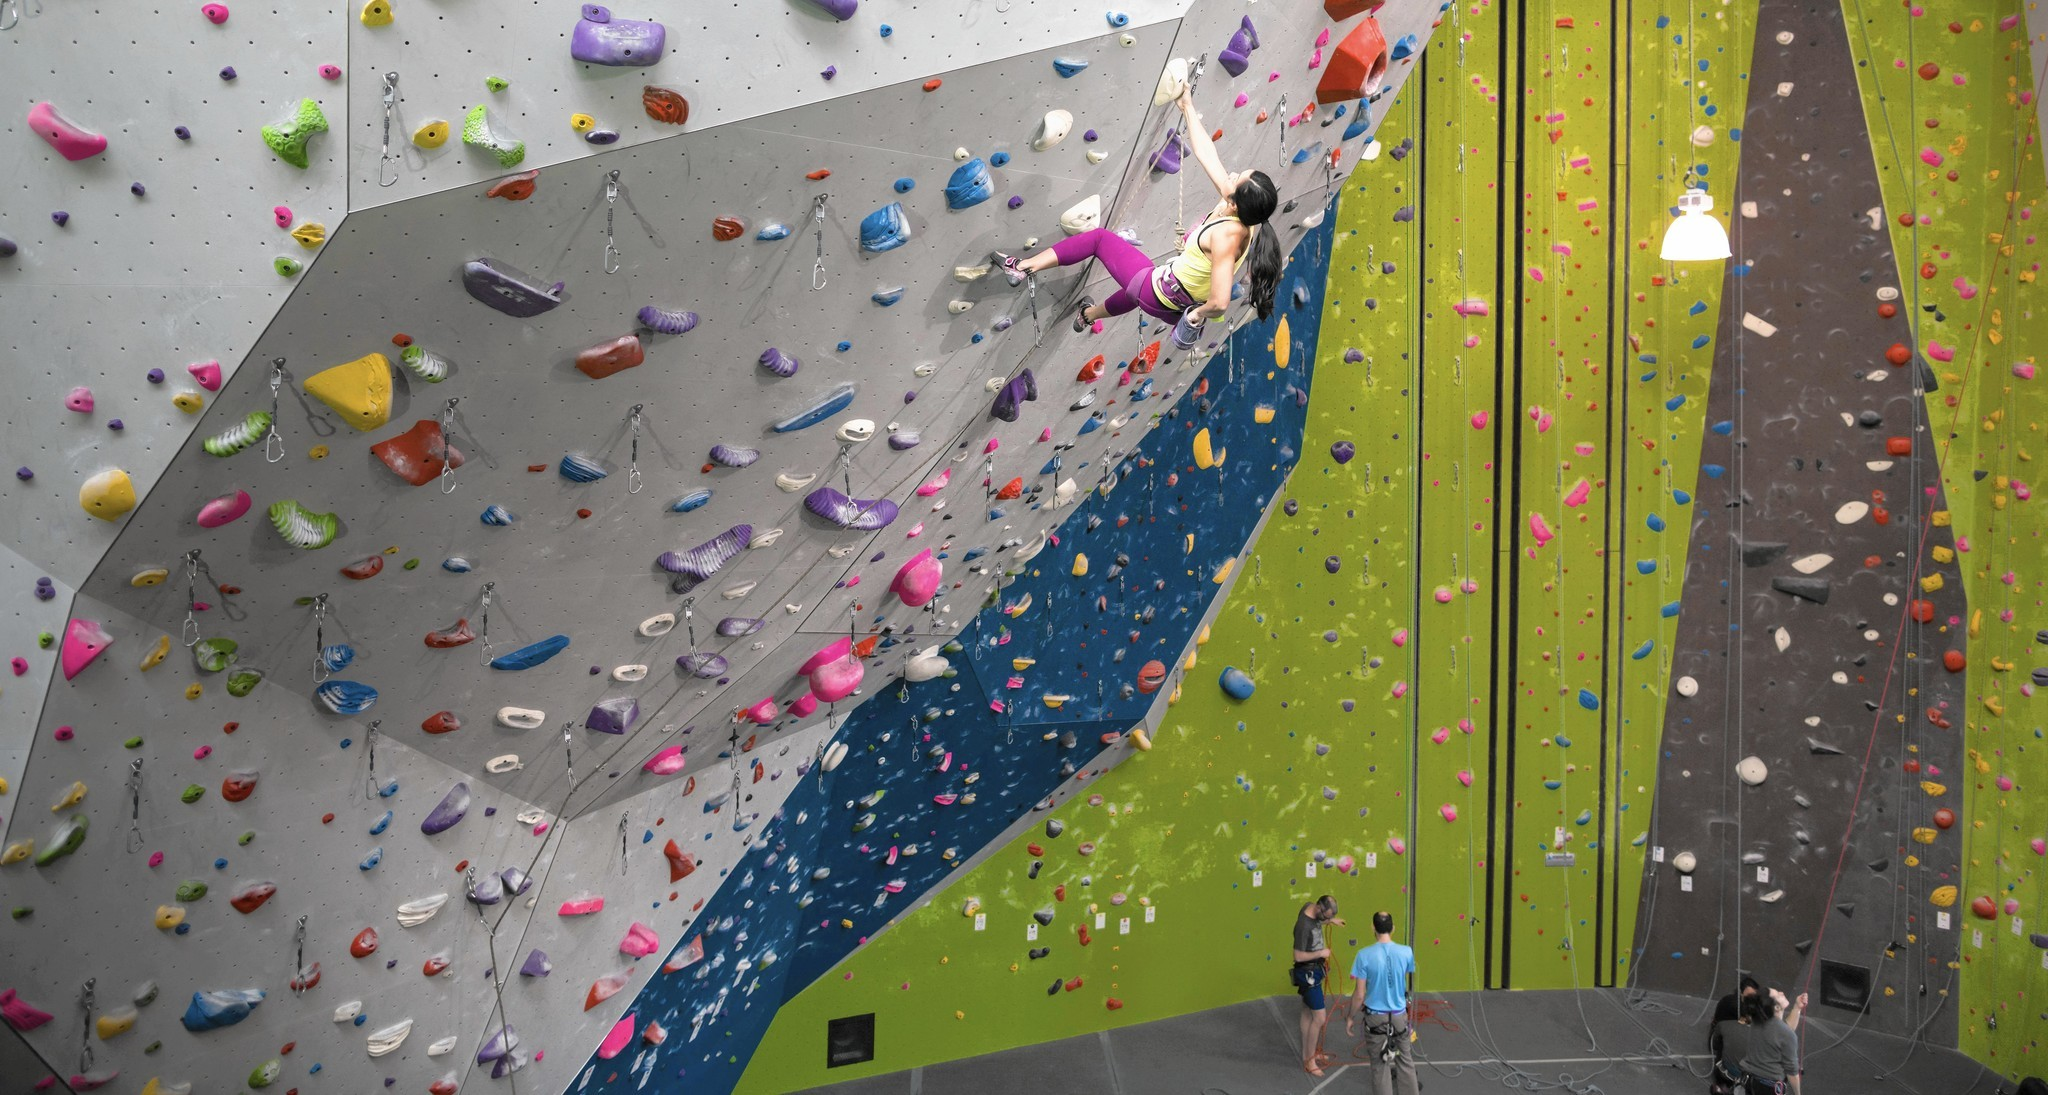 Massive climbing gym plans to open in Chicago - Chicago Tribune